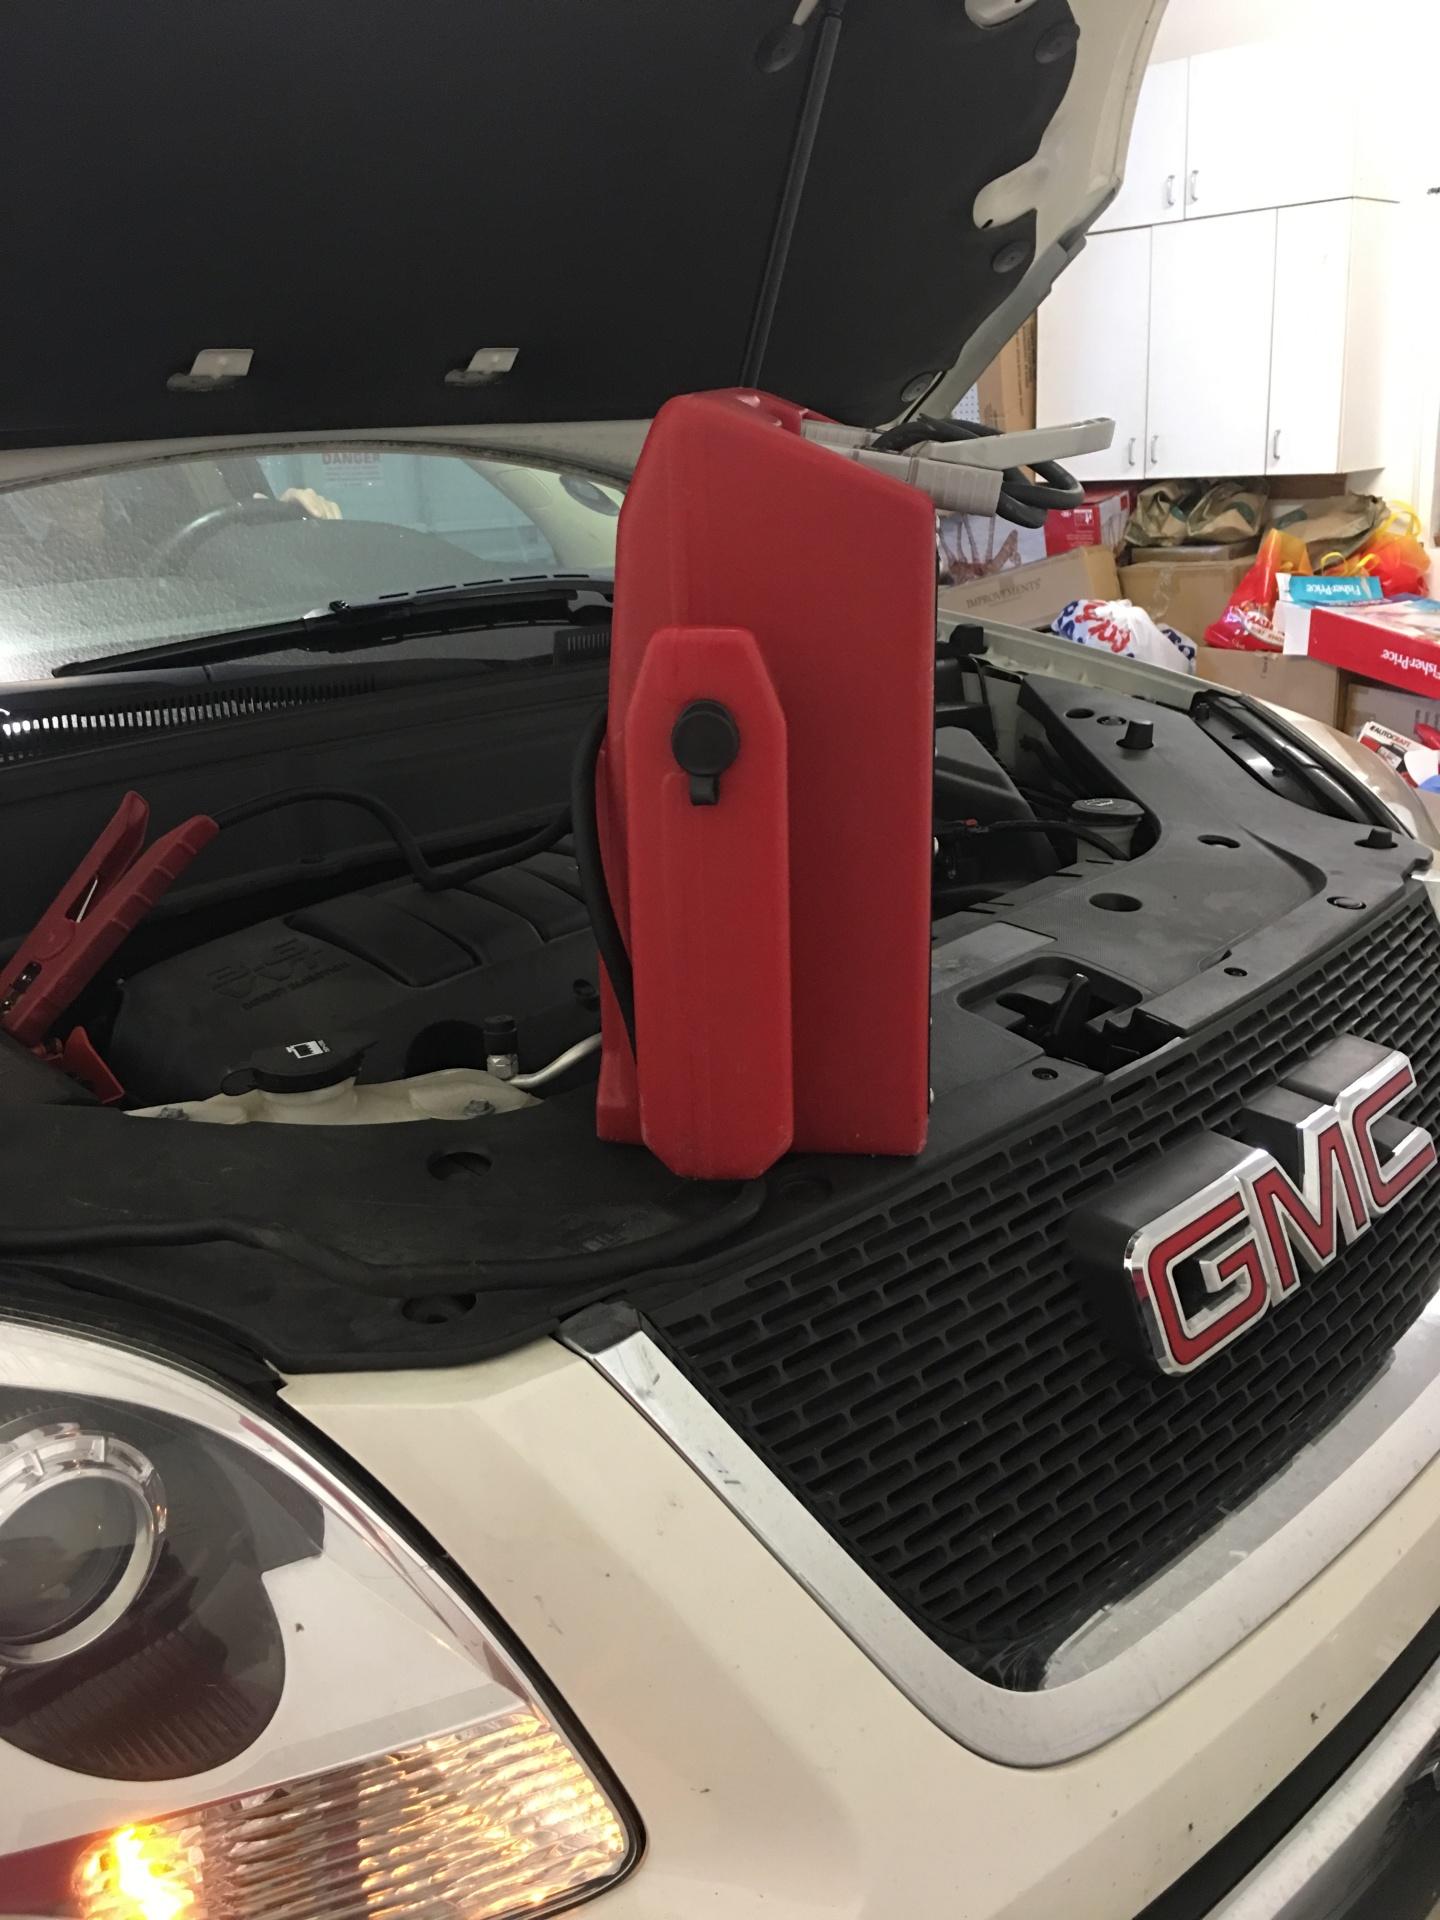 jump start service, jump start fort lauderdale, fort lauderdale jump start, broward jump start service, jump start service broward, dead battery broward